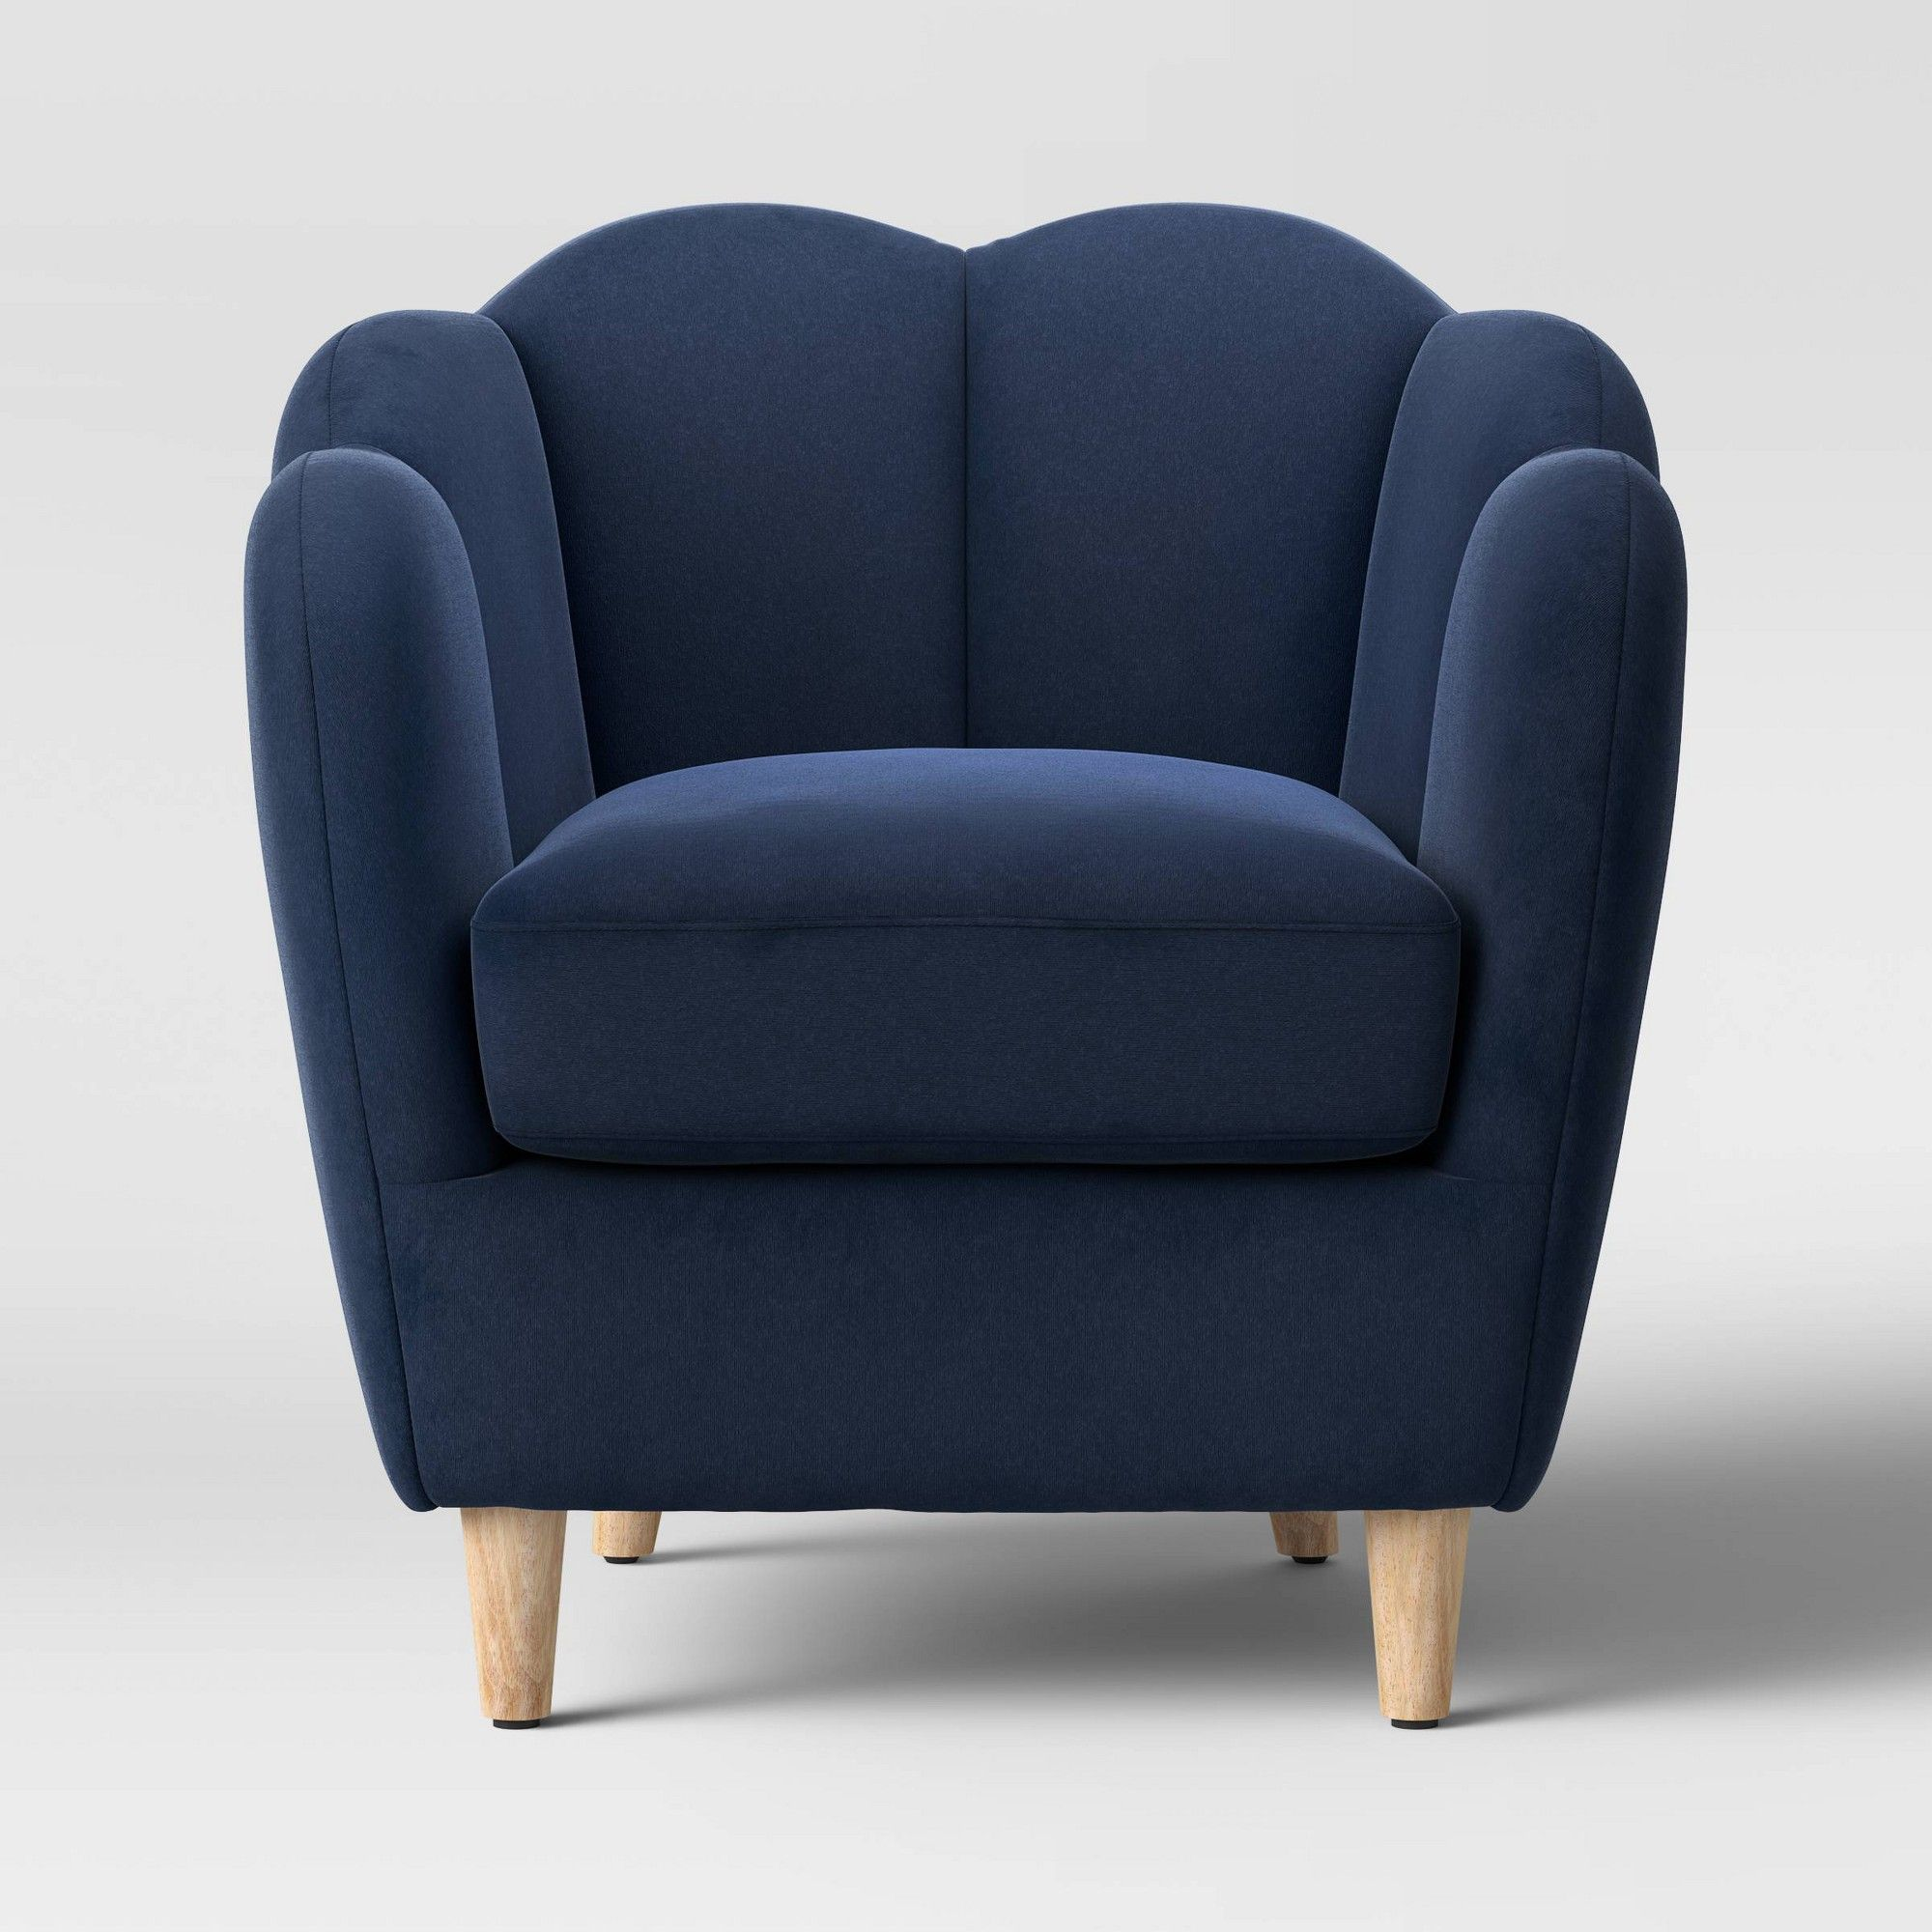 Best Waterville Upholstered Accent Chair Velvet Navy Blue 400 x 300